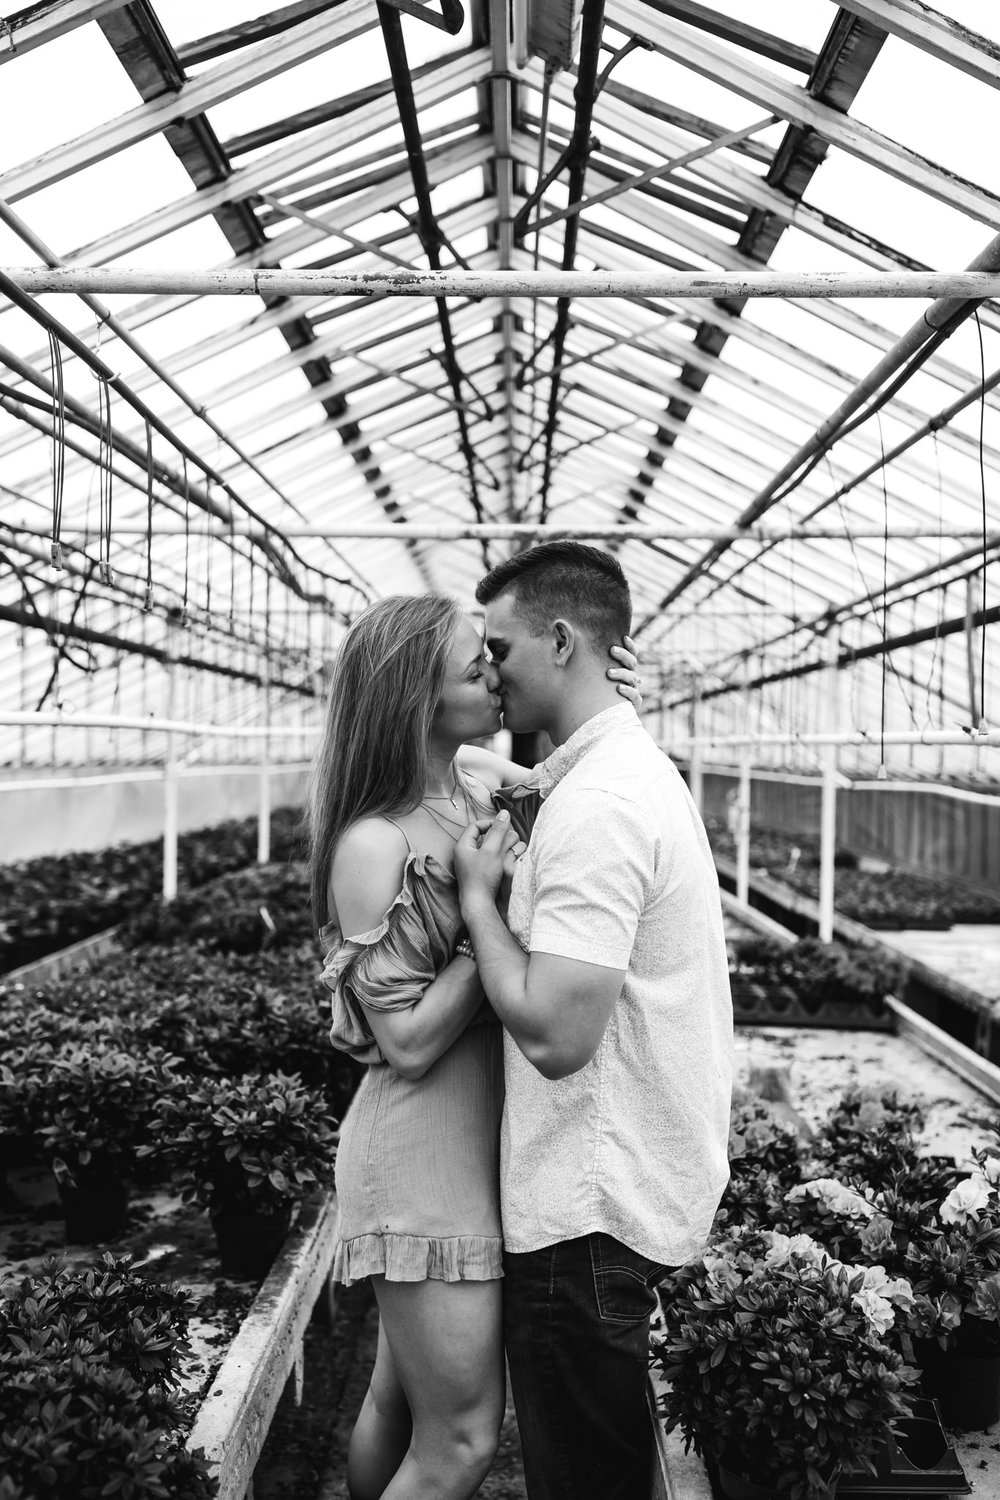 memphis-engagement-photographer-thewarmtharoundyou-greenhouse-engagement-pictures (118 of 118).jpg